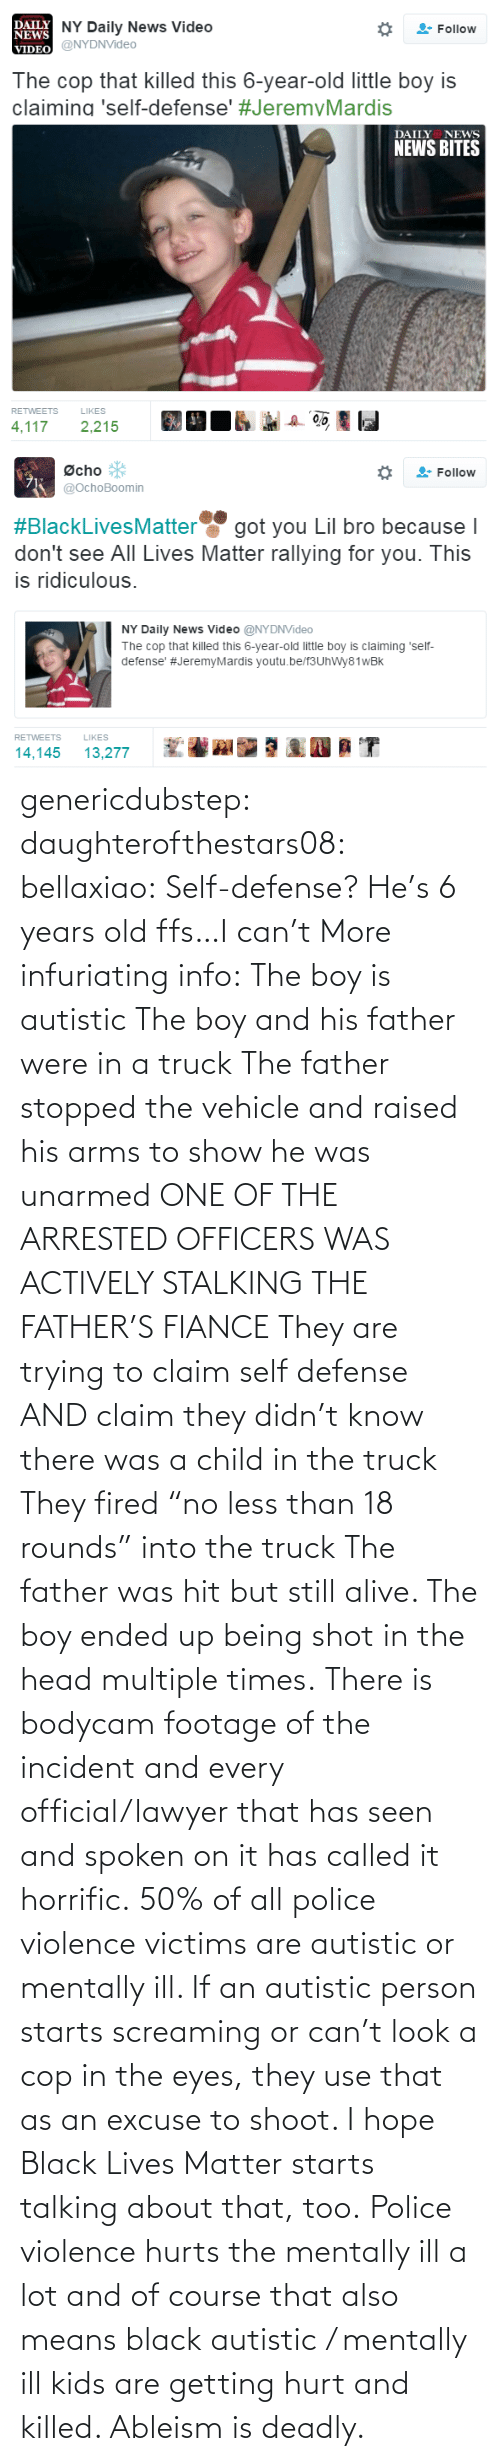 "times: genericdubstep: daughterofthestars08:  bellaxiao:  Self-defense? He's 6 years old ffs…I can't  More infuriating info: The boy is autistic The boy and his father were in a truck The father stopped the vehicle and raised his arms to show he was unarmed ONE OF THE ARRESTED OFFICERS WAS ACTIVELY STALKING THE FATHER'S FIANCE They are trying to claim self defense AND claim they didn't know there was a child in the truck They fired ""no less than 18 rounds"" into the truck The father was hit but still alive. The boy ended up being shot in the head multiple times. There is bodycam footage of the incident and every official/lawyer that has seen and spoken on it has called it horrific.  50% of all police violence victims are autistic or mentally ill. If an autistic person starts screaming or can't look a cop in the eyes, they use that as an excuse to shoot. I hope Black Lives Matter starts talking about that, too. Police violence hurts the mentally ill a lot and of course that also means black autistic / mentally ill kids are getting hurt and killed. Ableism is deadly."